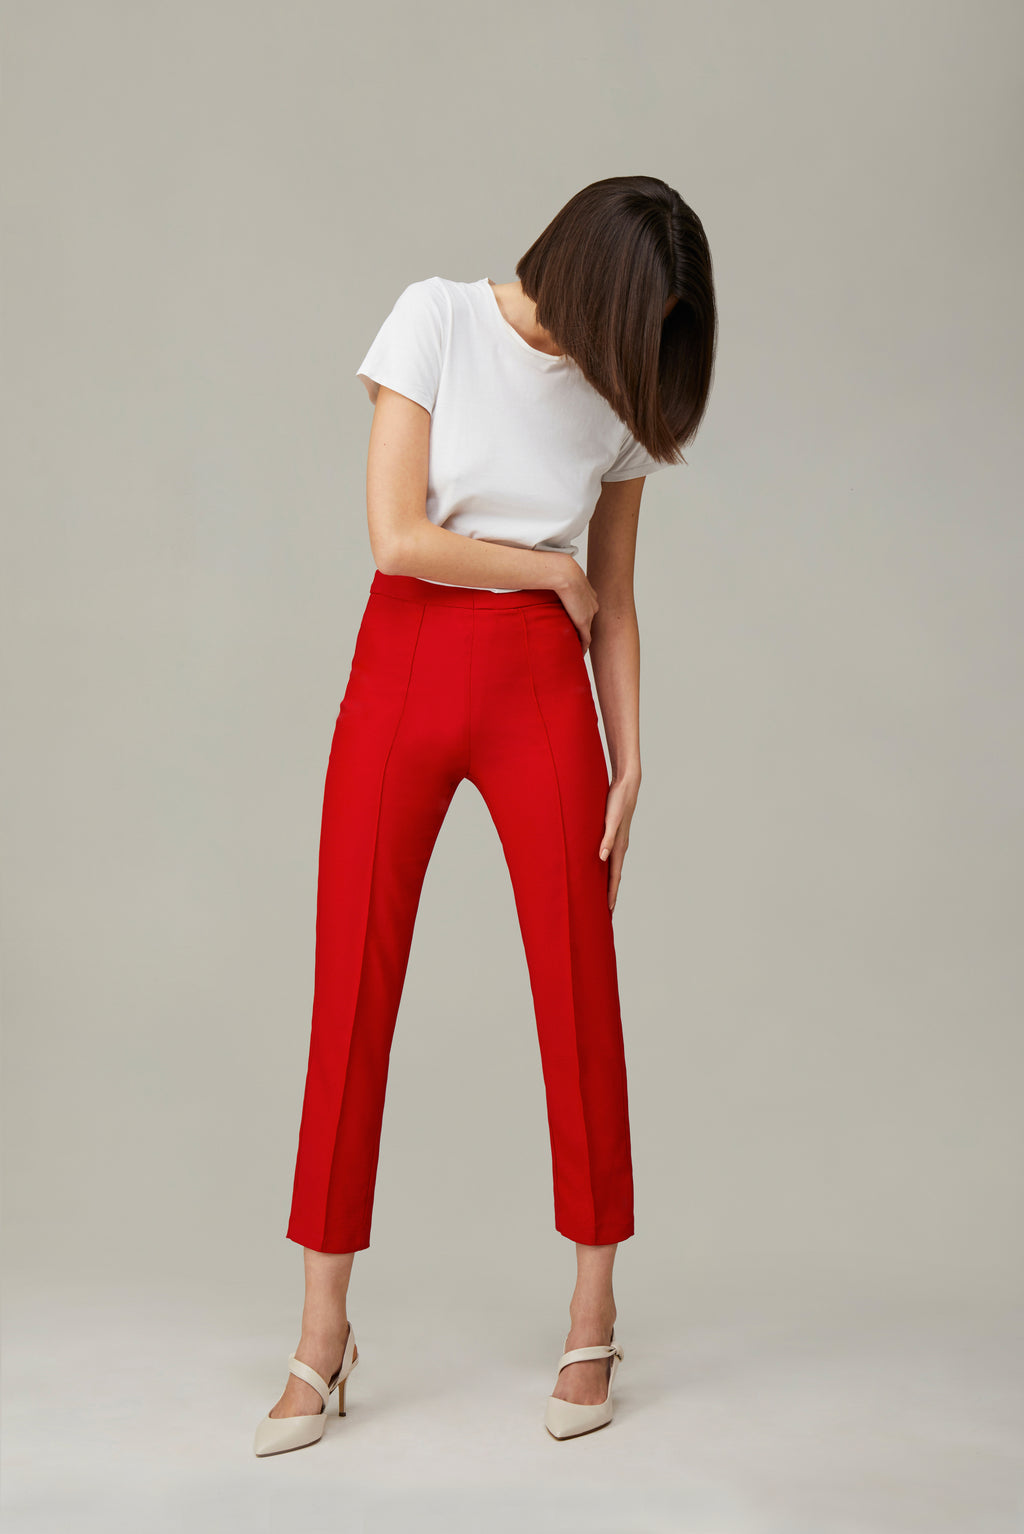 The Red Smoking Pants